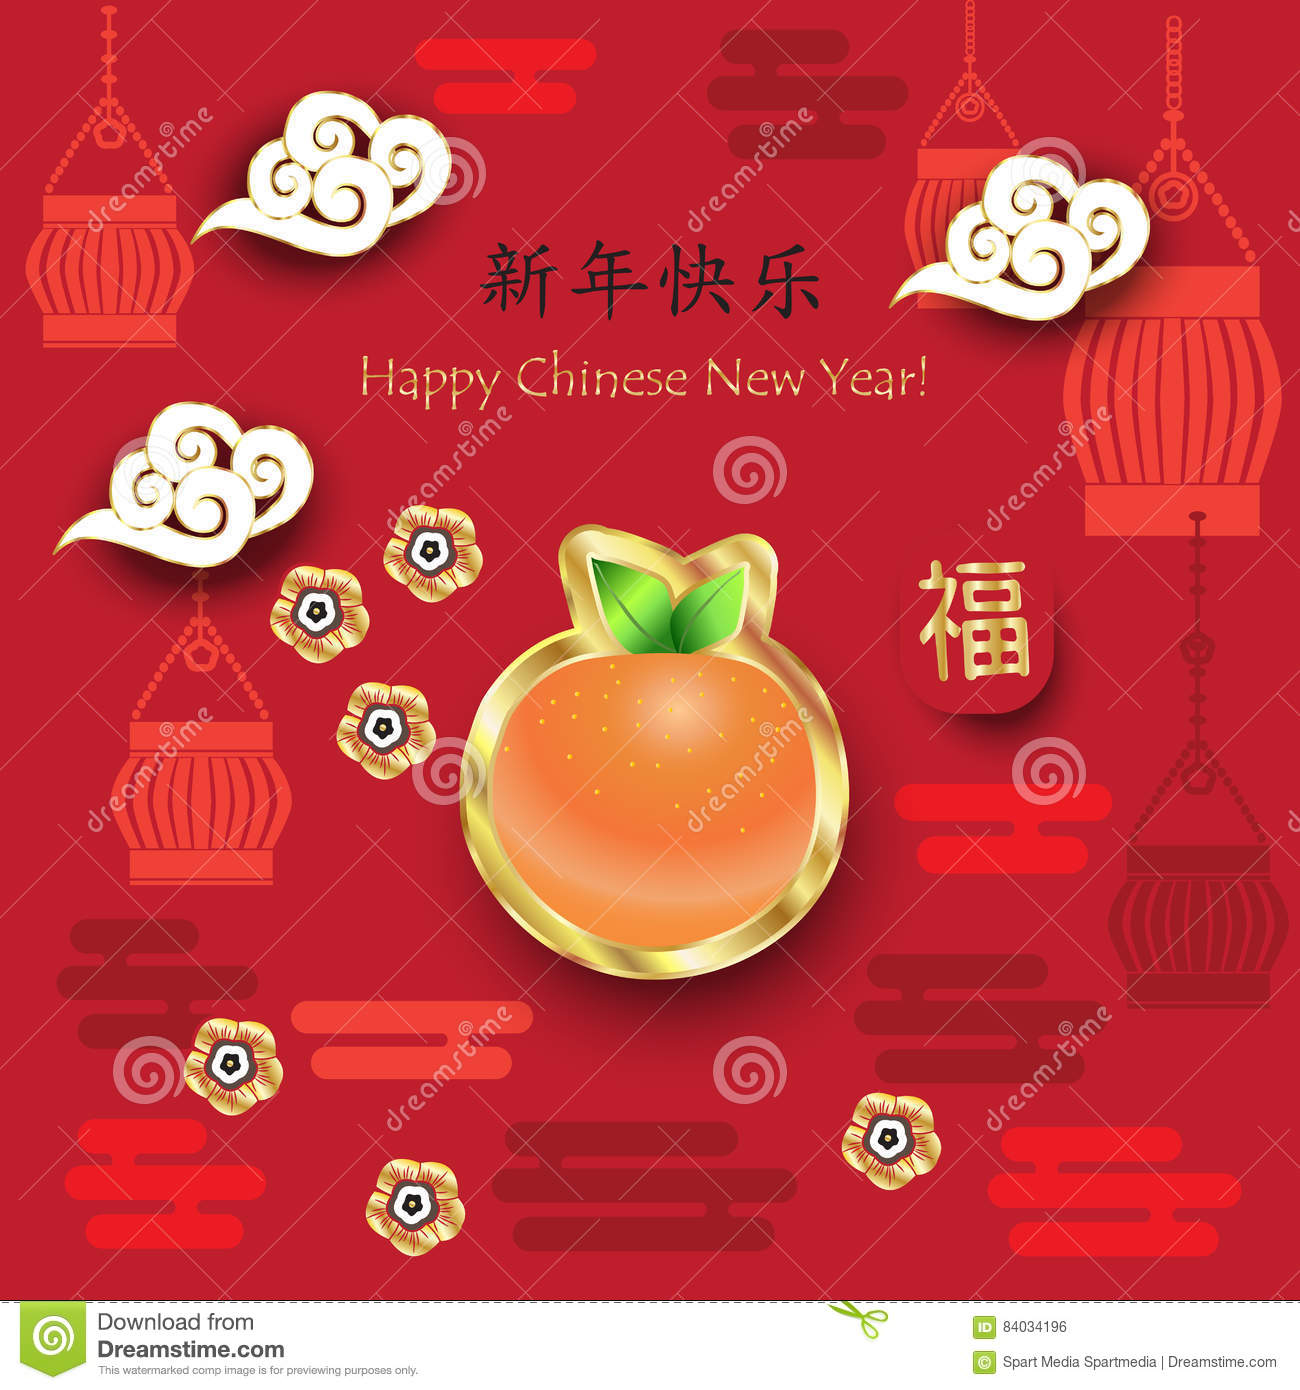 Chinese new year stock vector illustration of bird east 84034196 download chinese new year stock vector illustration of bird east 84034196 m4hsunfo